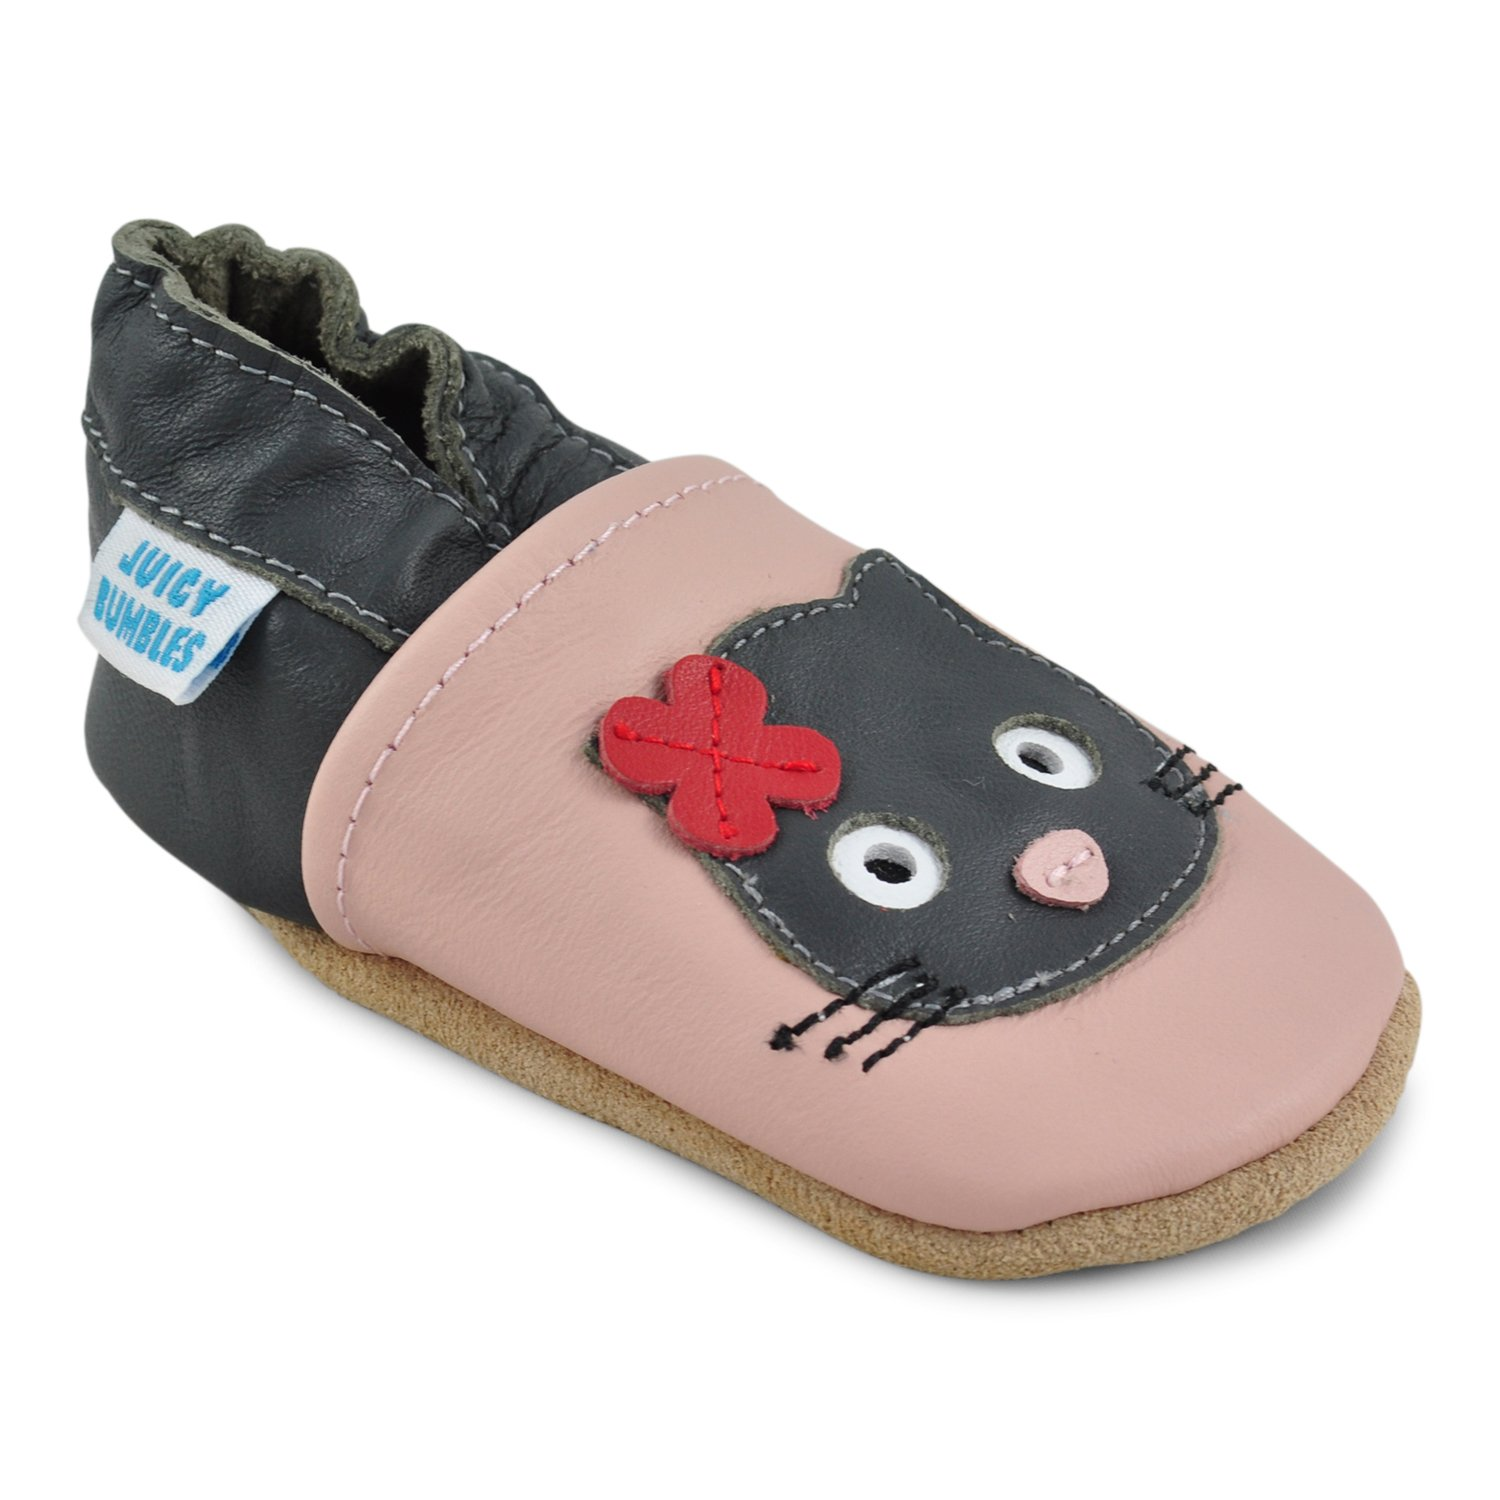 mode designer 8105f e9cc7 Top Chaussons bébé fille selon les notes Amazon.fr